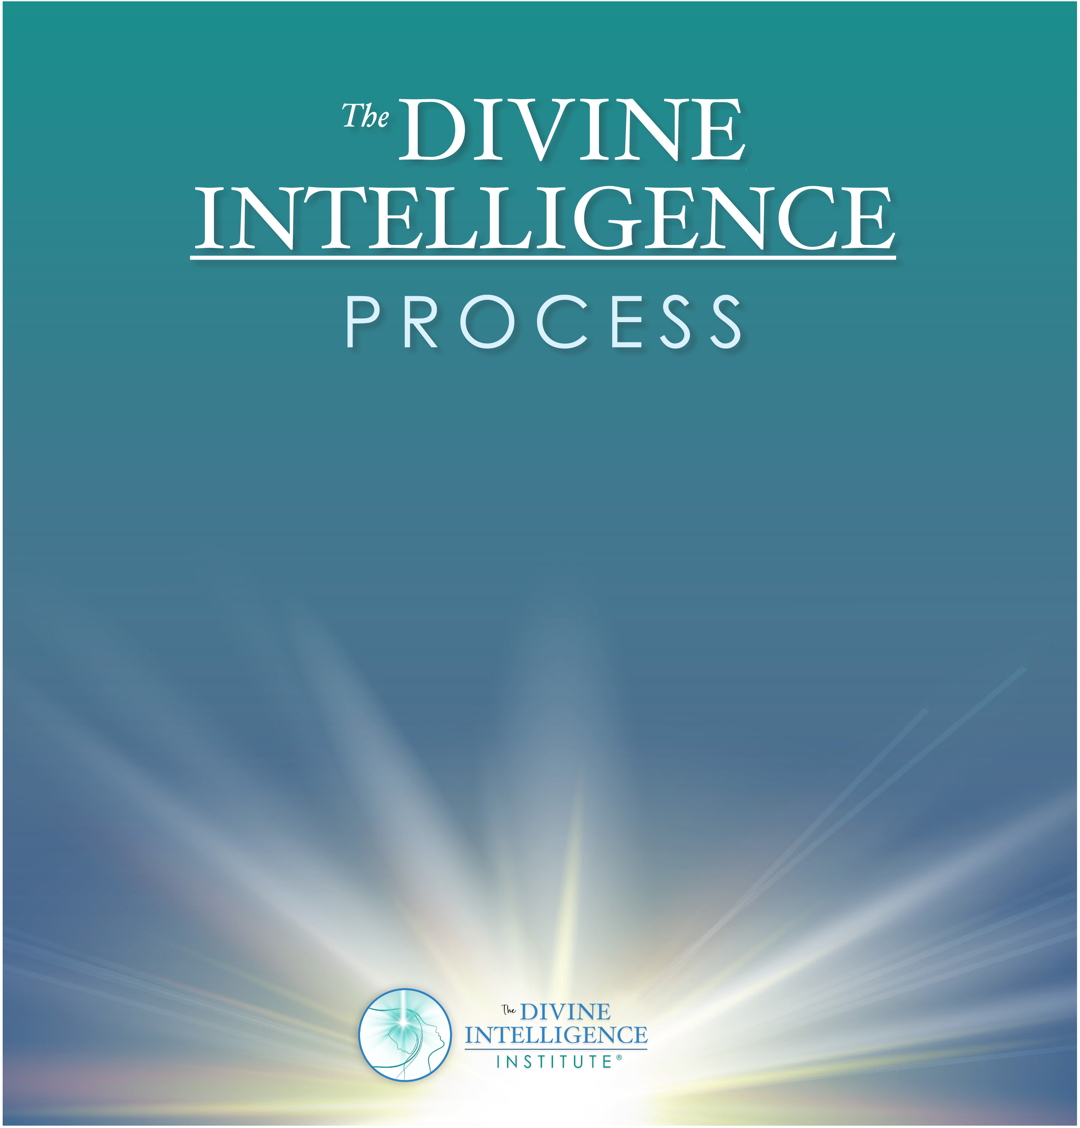 Spiritual Life Coach Certification - Divine Intelligence Institute